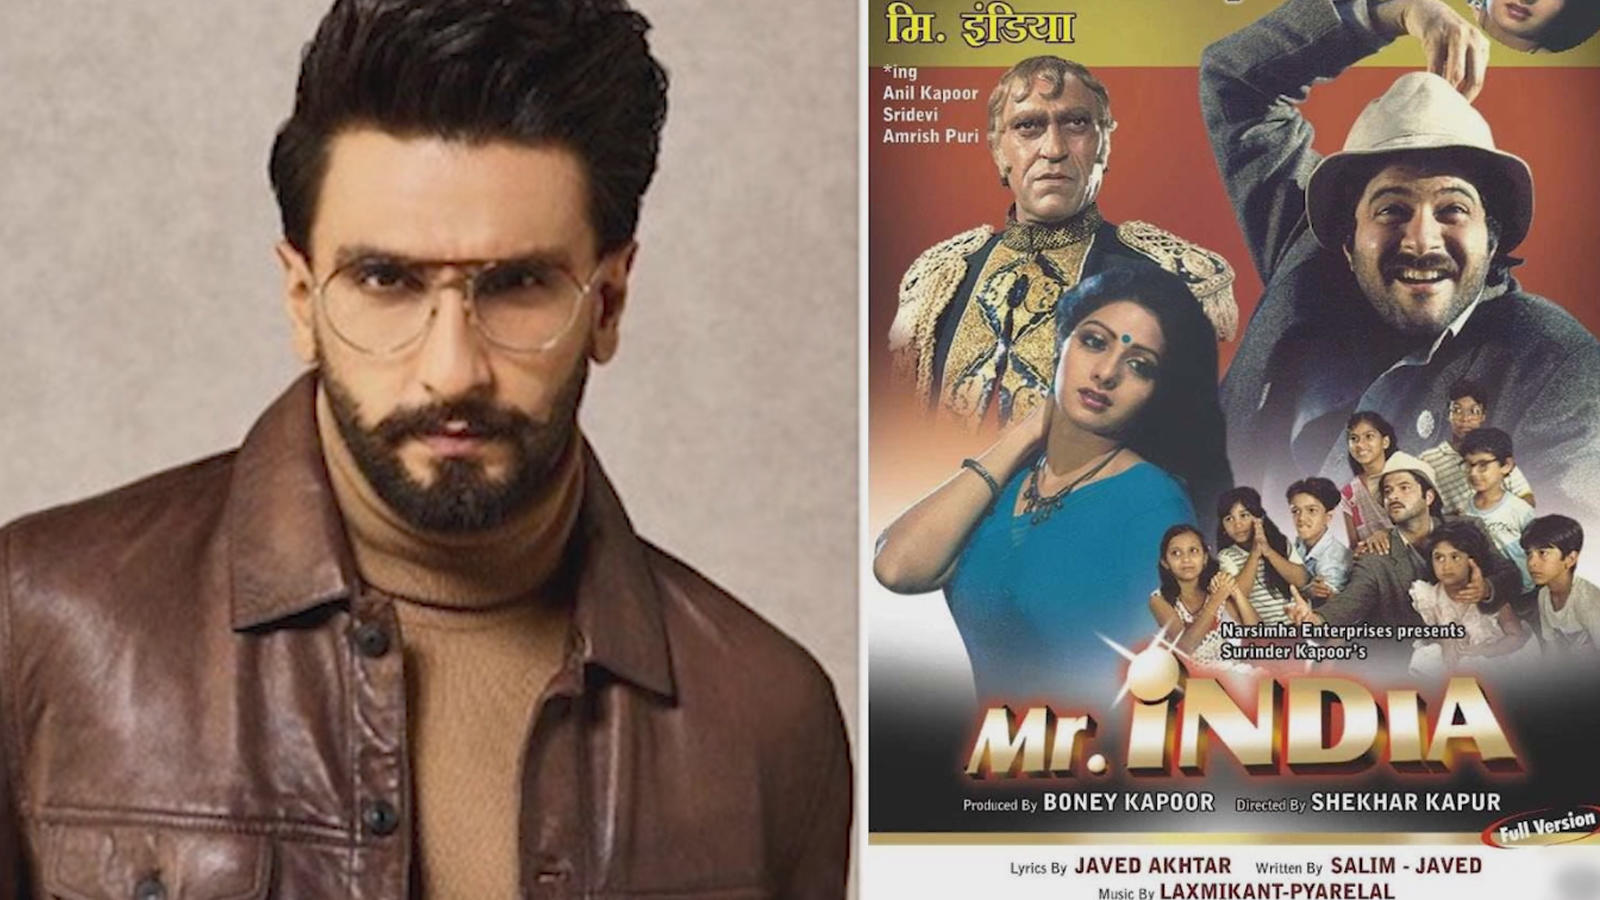 after-anil-kapoor-ranveer-singh-to-play-the-iconic-character-of-mr-india-on-screen